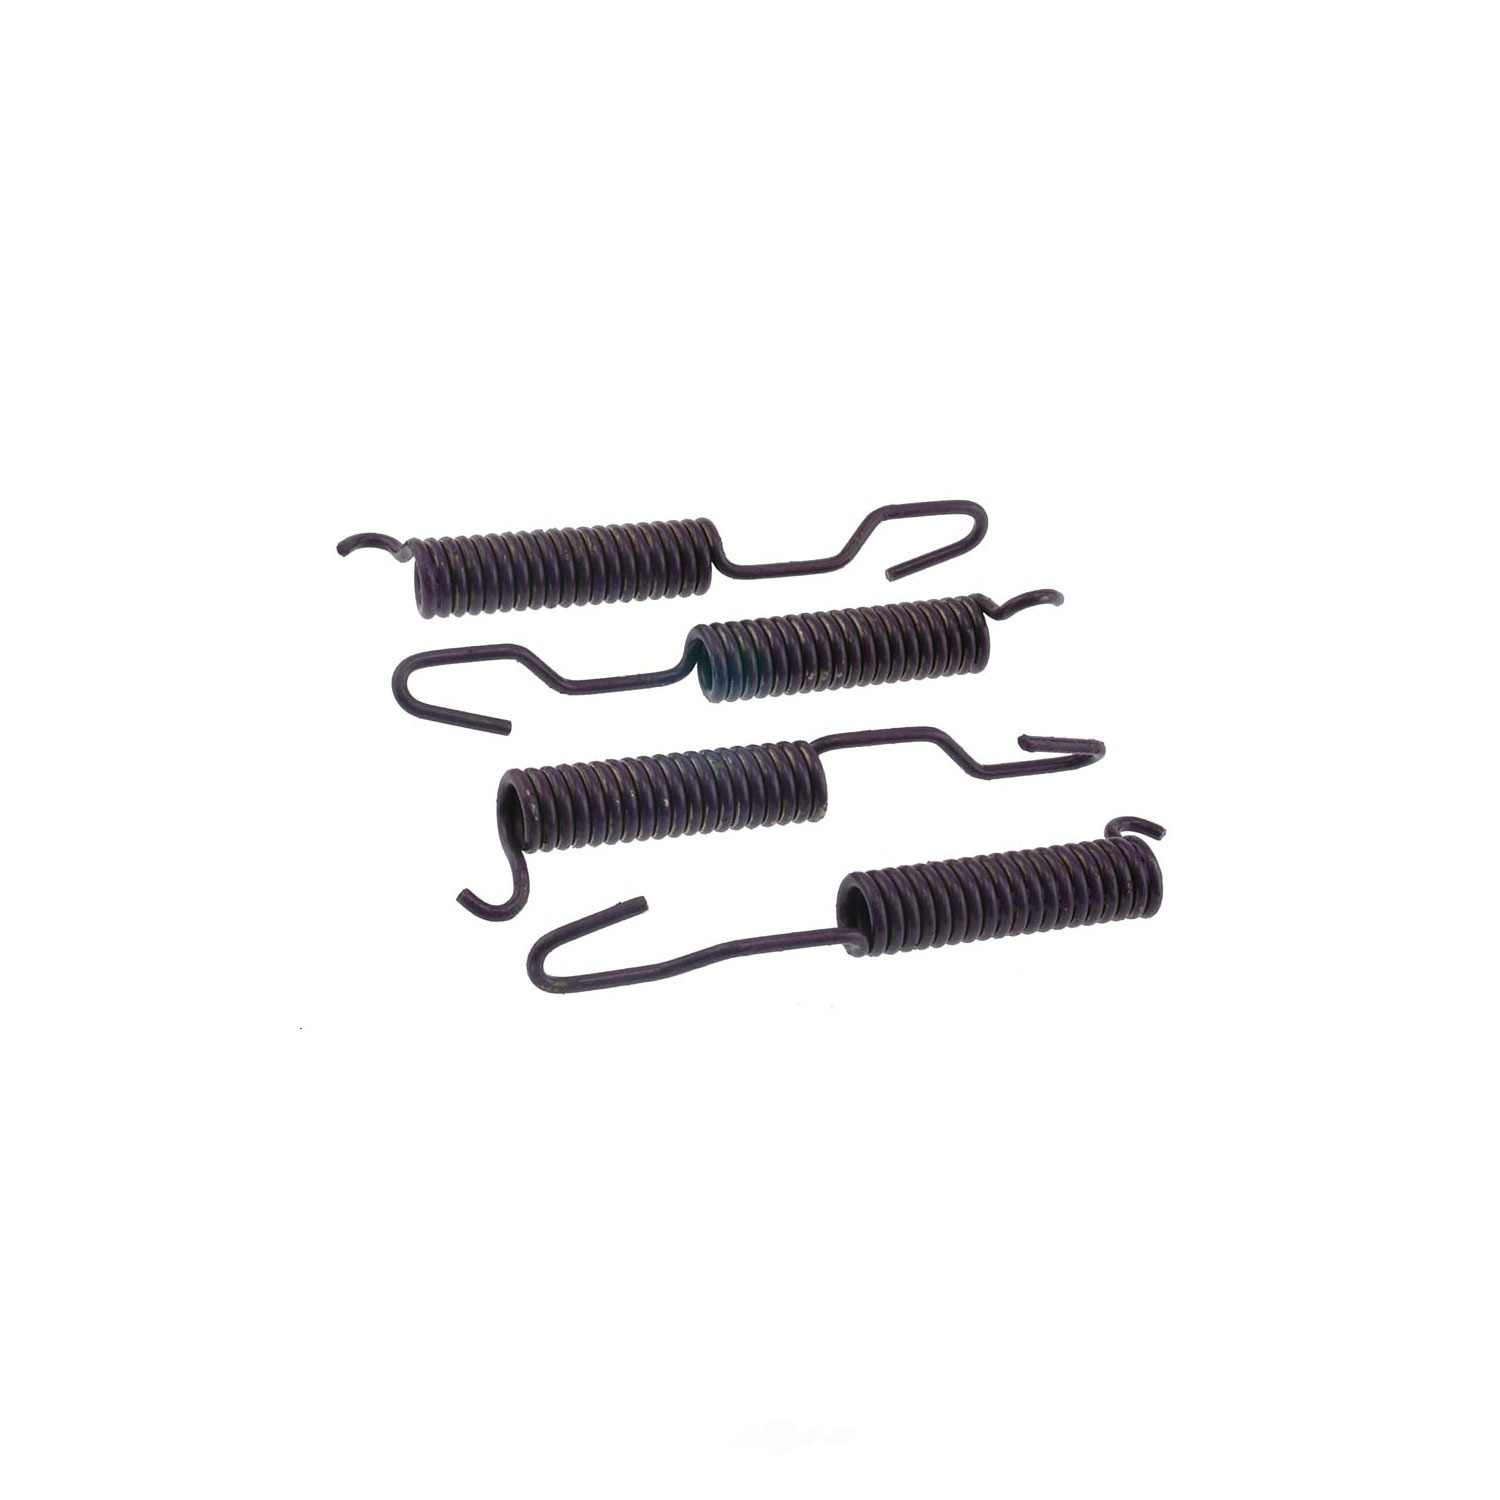 CARLSON QUALITY BRAKE PARTS - Drum Brake Shoe Return Spring Kit - CRL H131